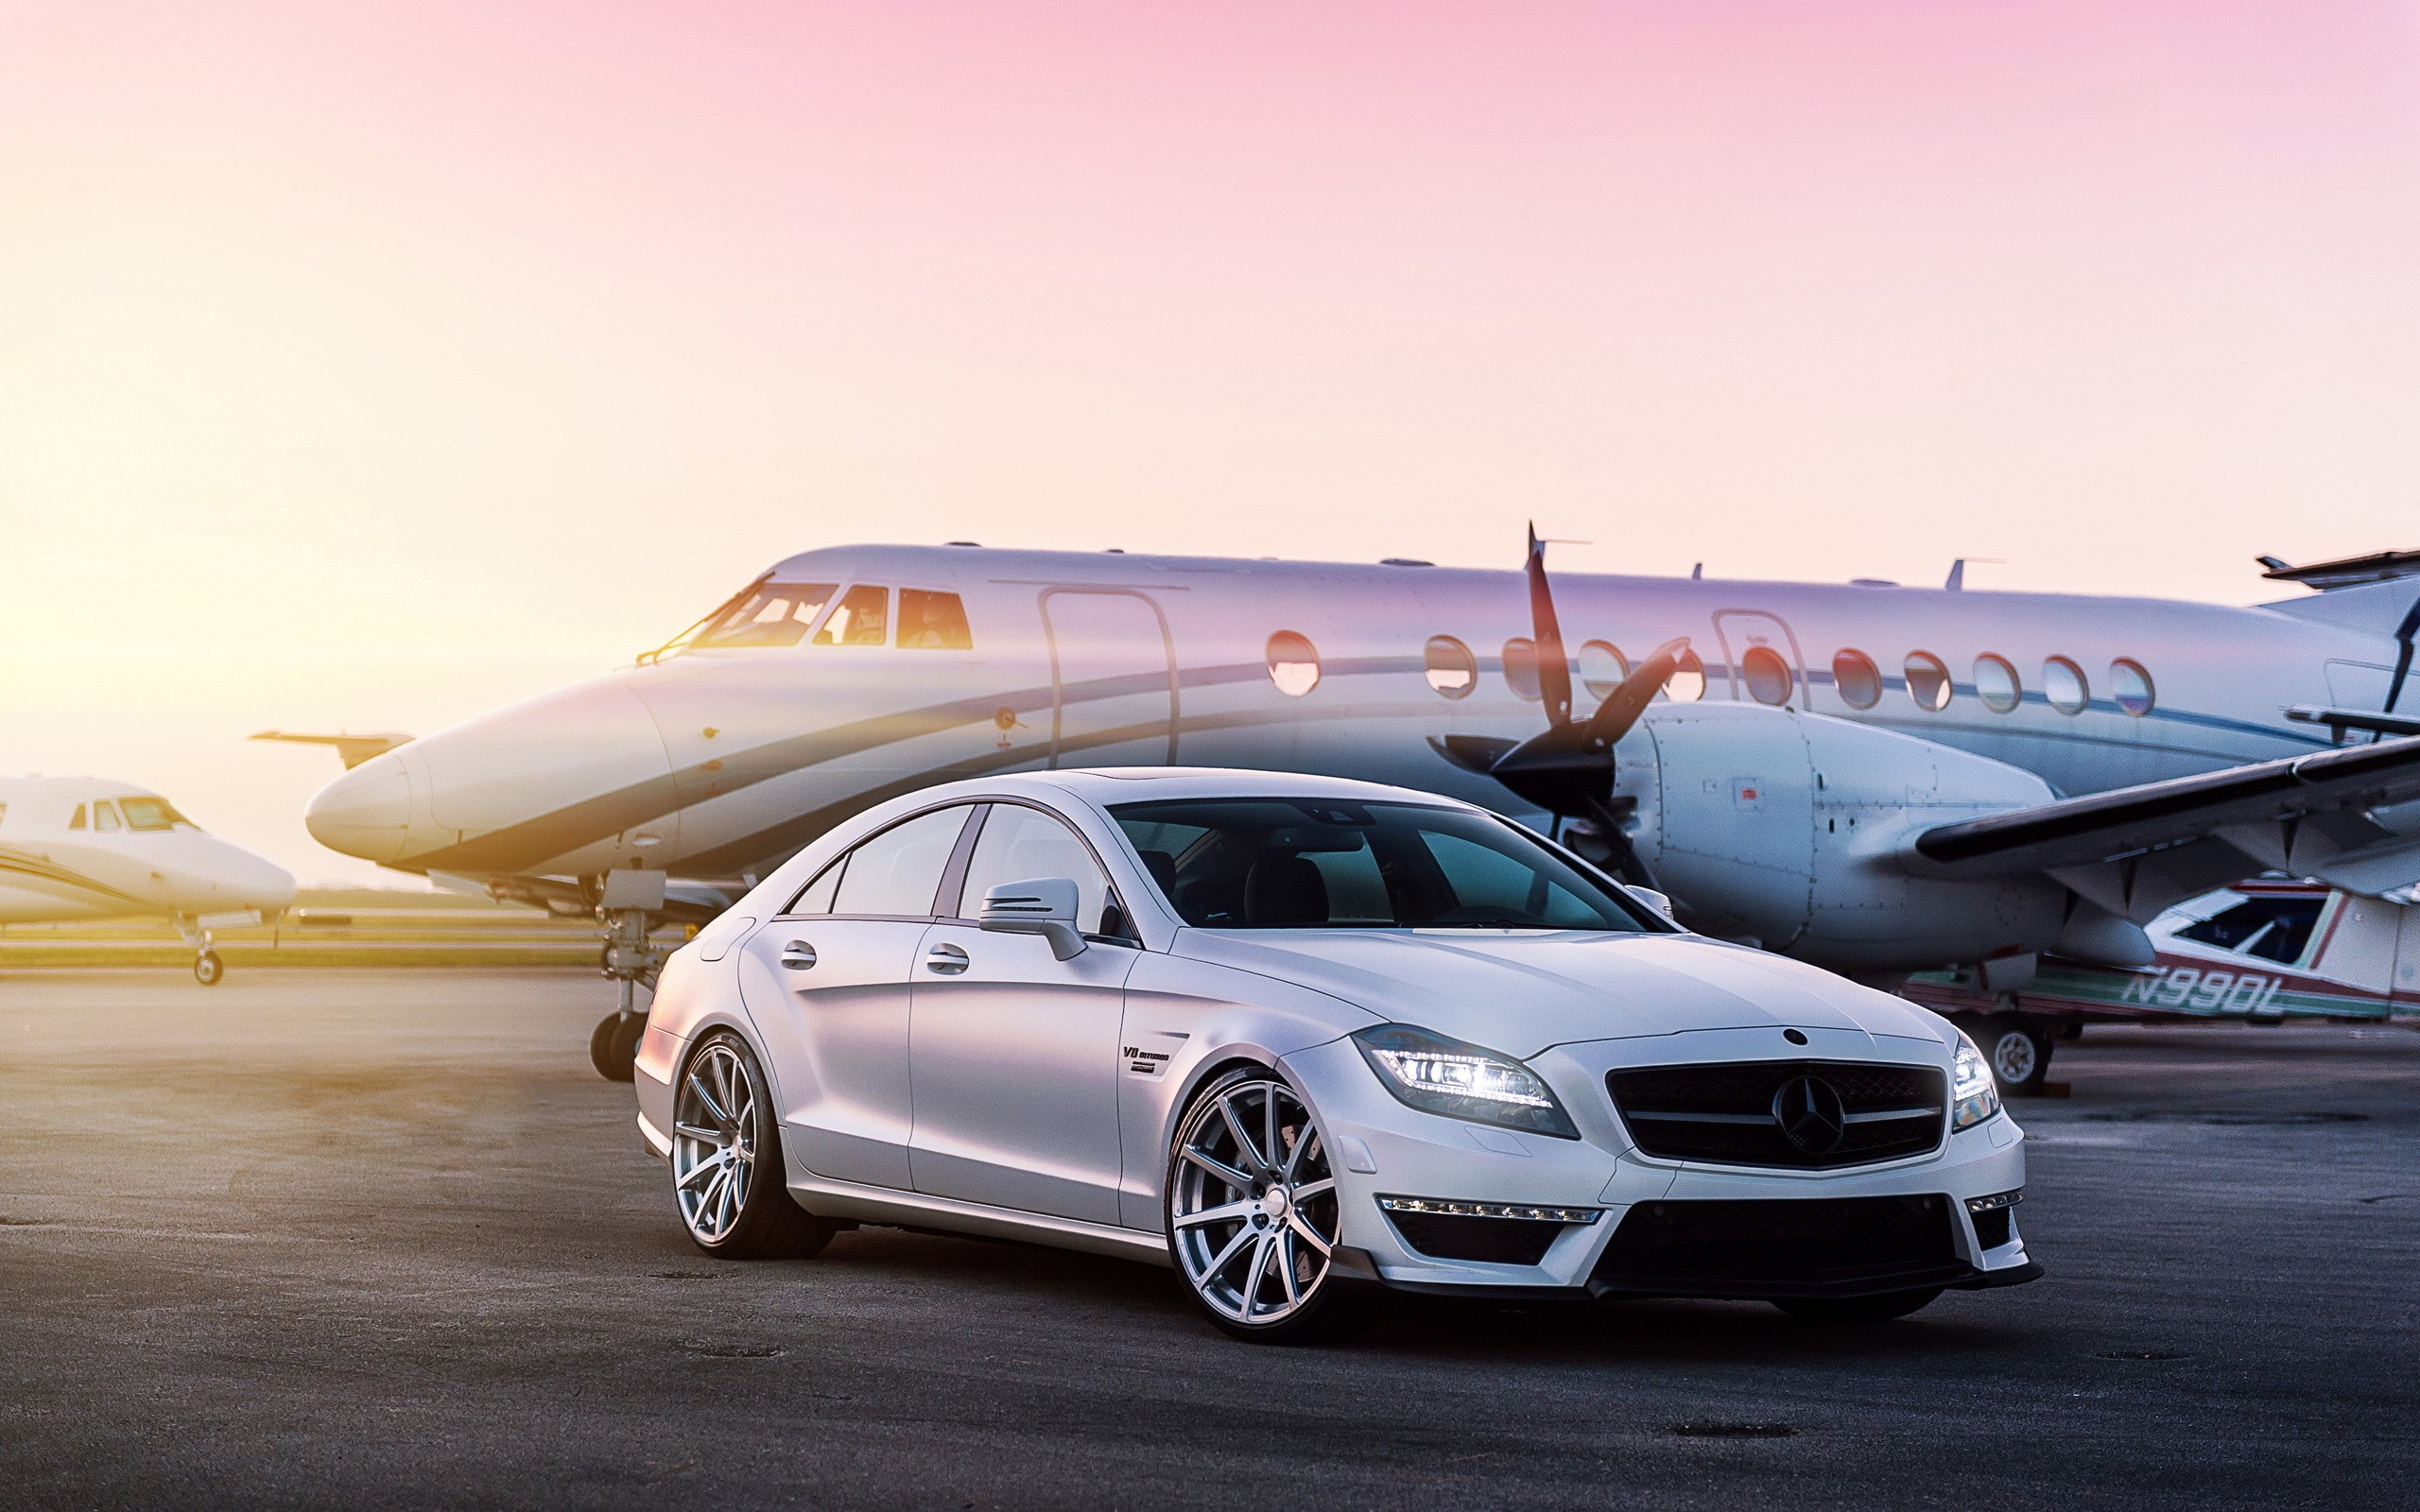 Mercedes Benz CLS63 AMG HD Wallpaper. Download 2560 × 1600, 841 KB